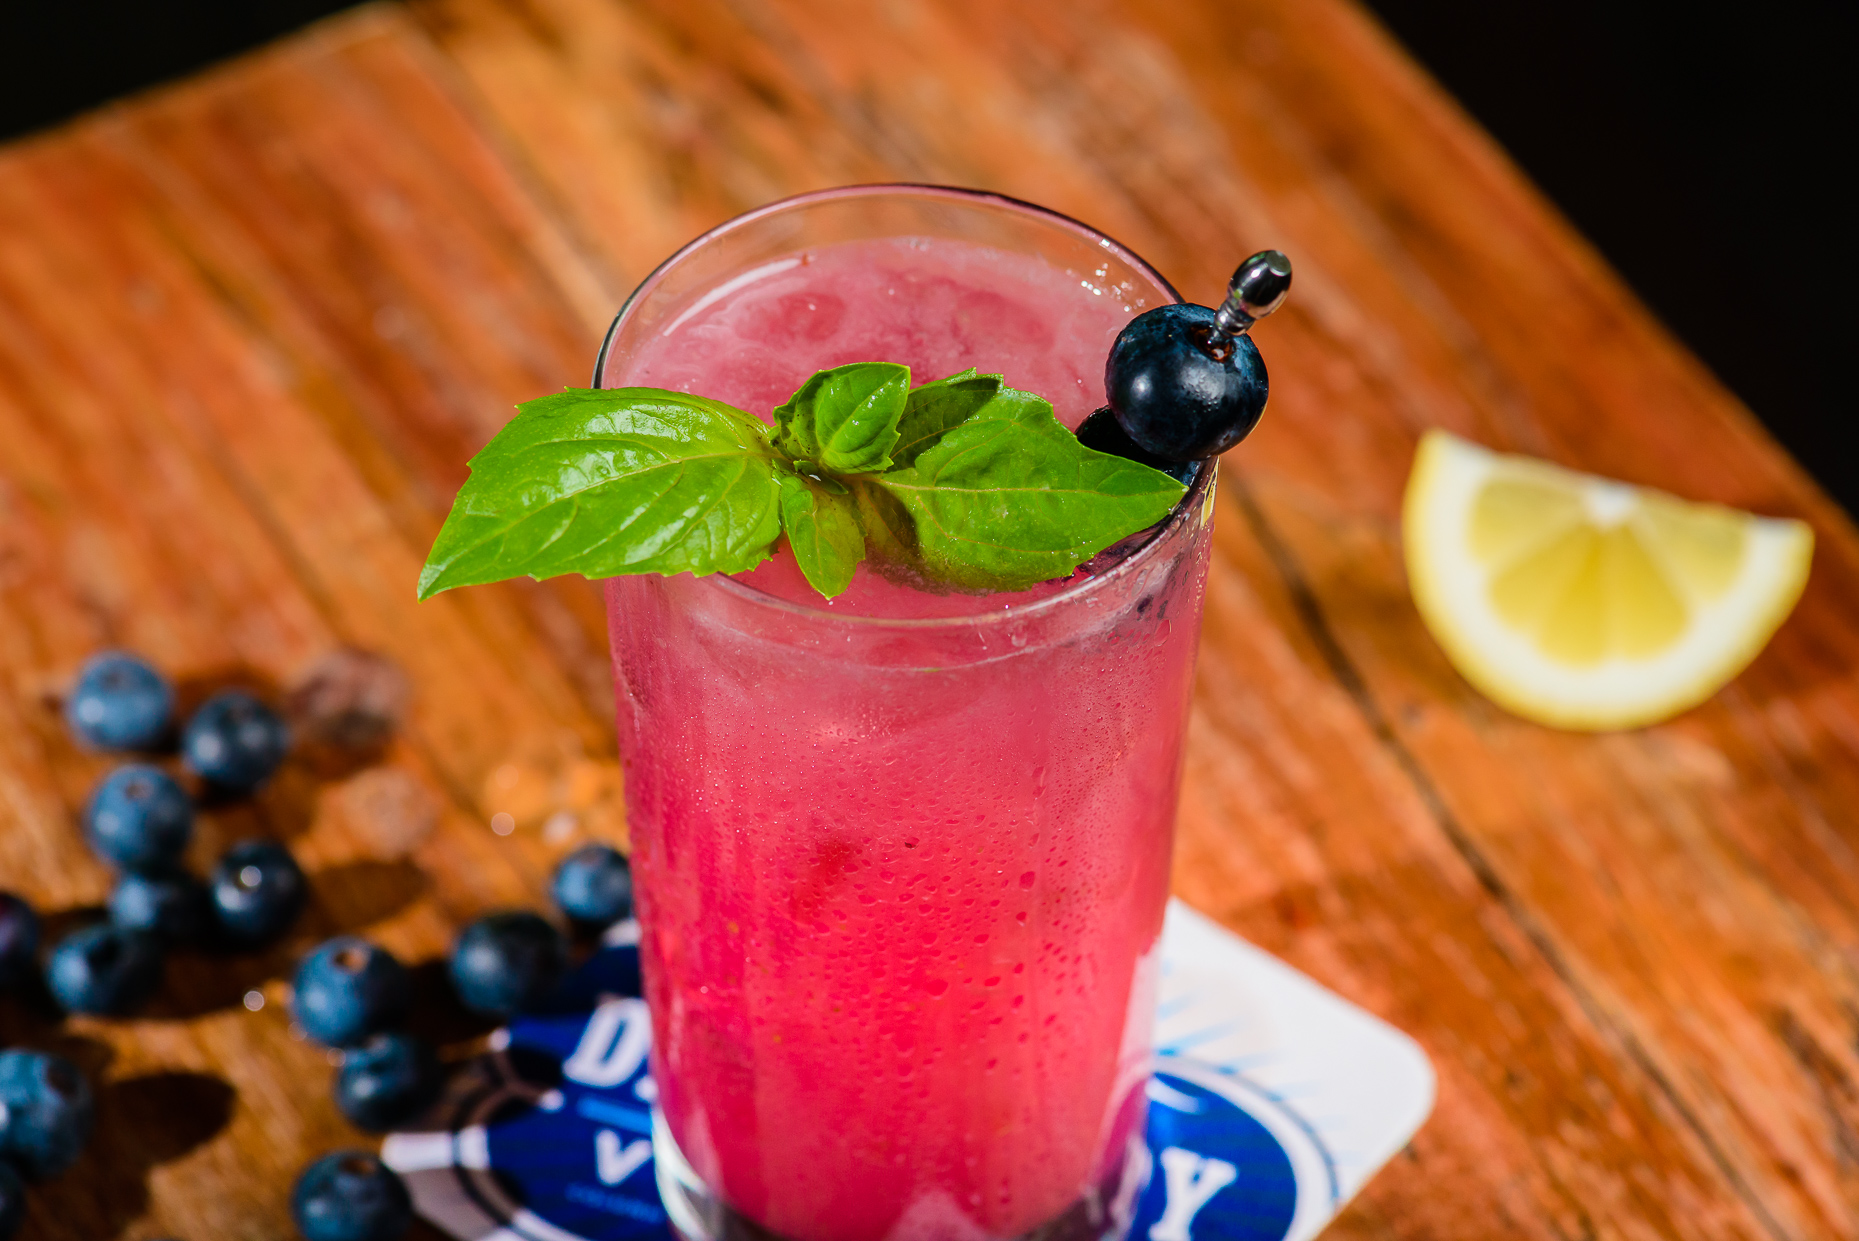 Austin-Commercial-Photographer-Product-Deep-Eddy-Vodka-Drink-Food-Texas